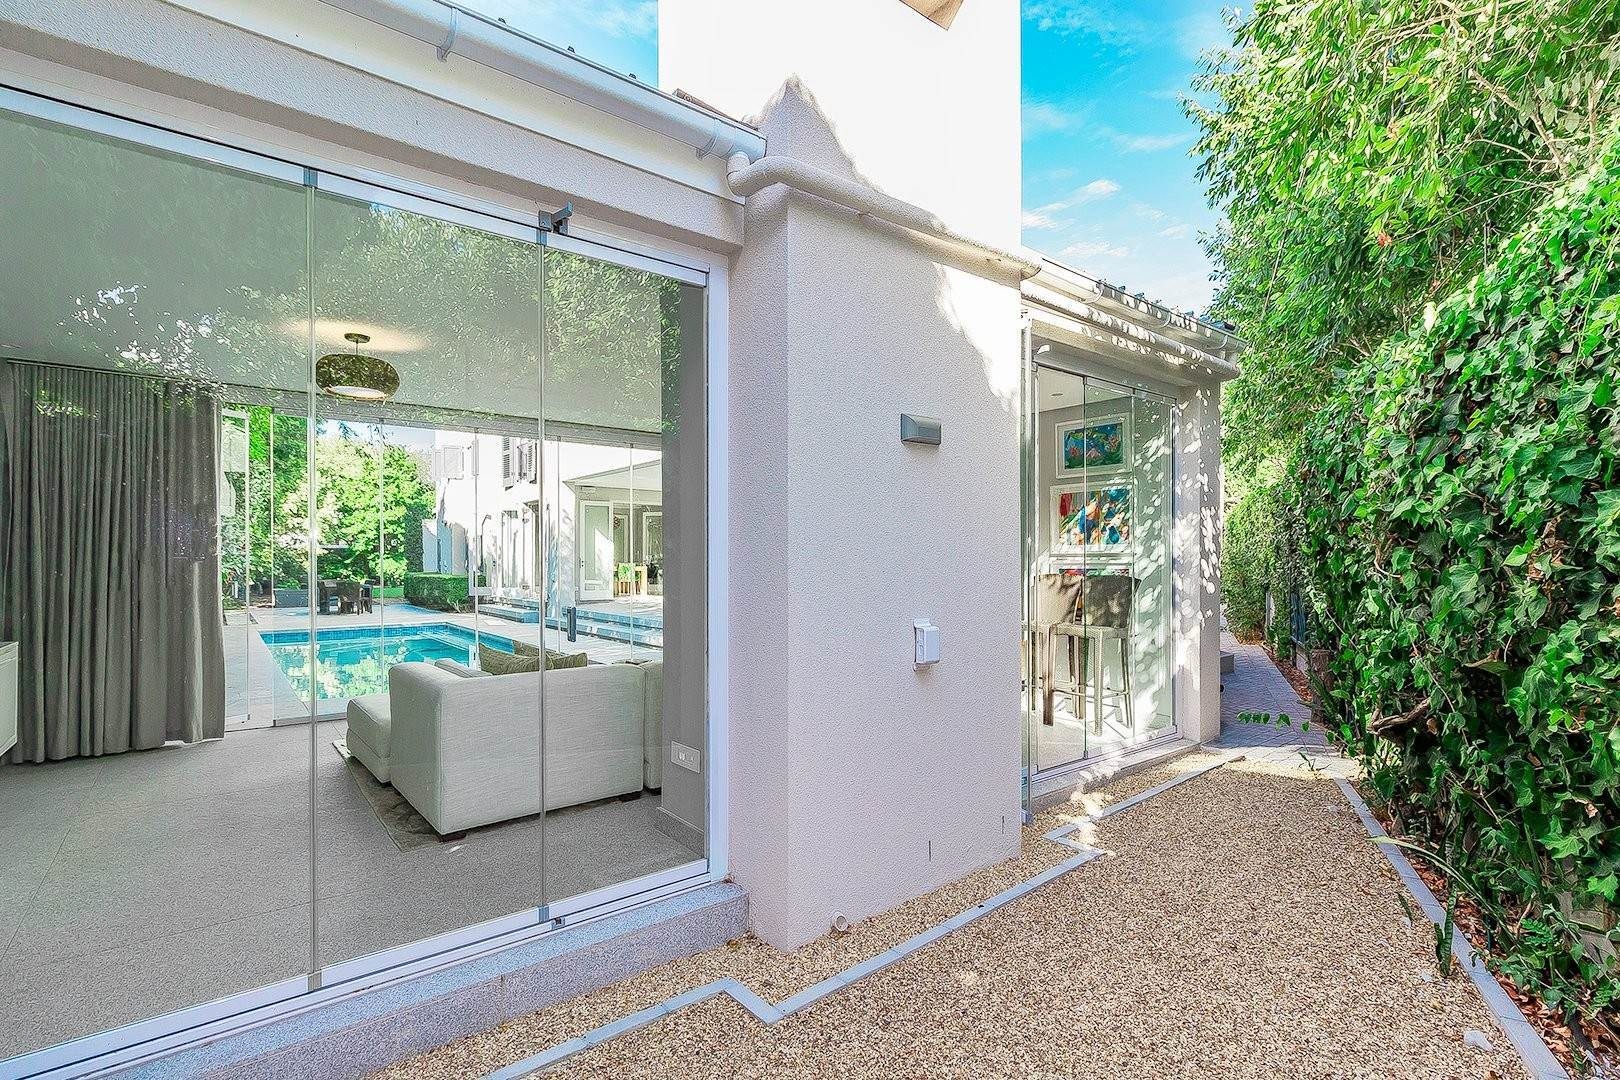 16. Single Family Home for Sale at 5 Pitlochry Road, Rondebosch Rondebosch, Cape Town, Western Cape, South Africa